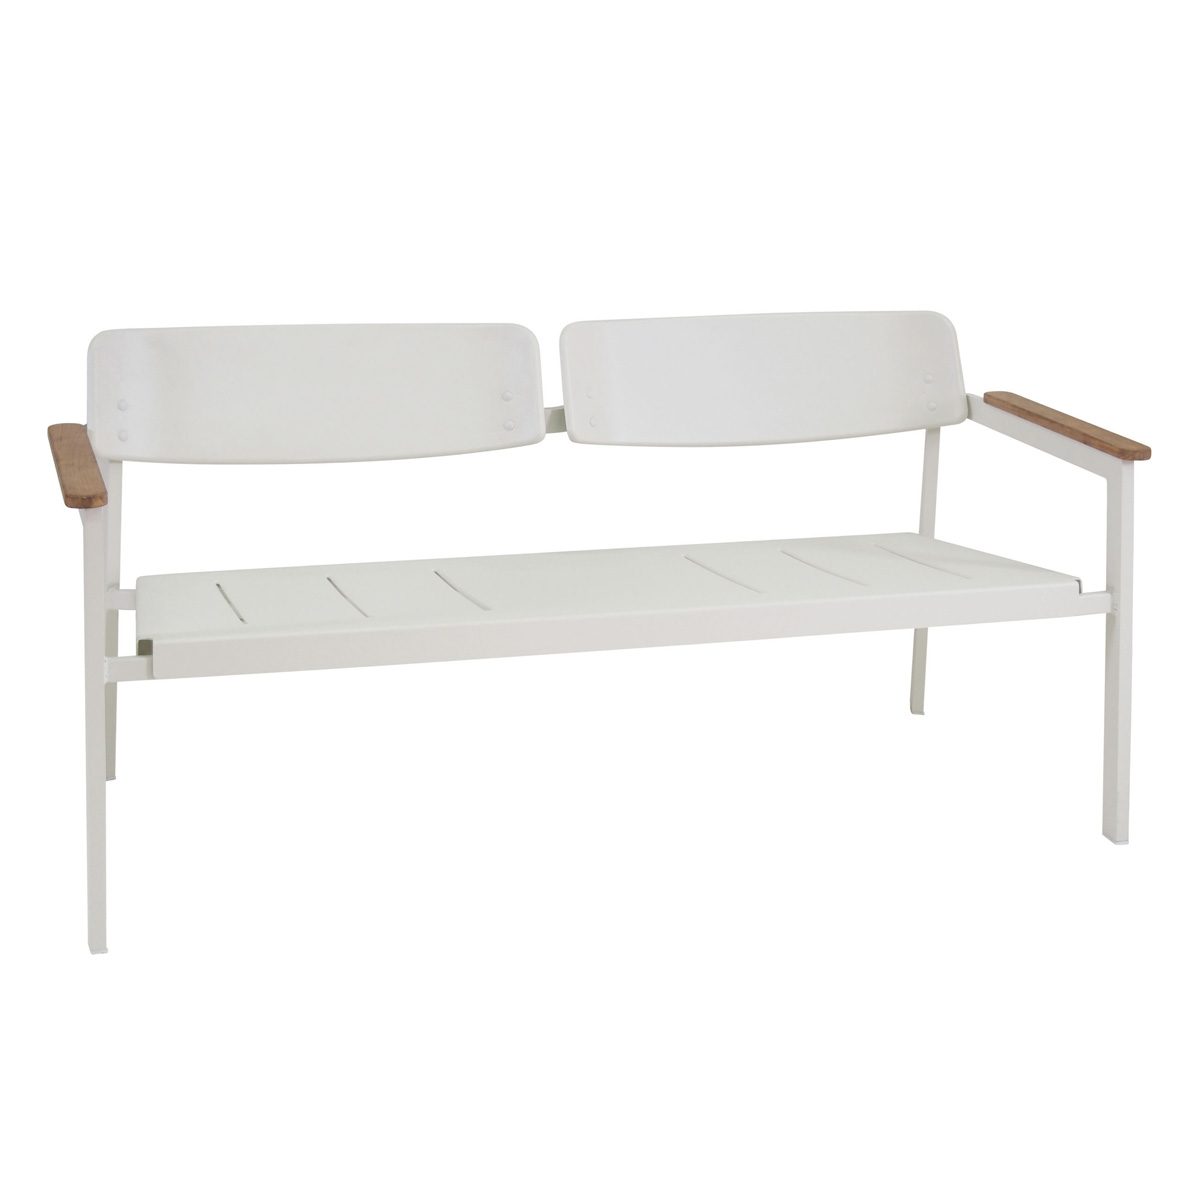 Shine Sofa 260 from Emuamericas, llc